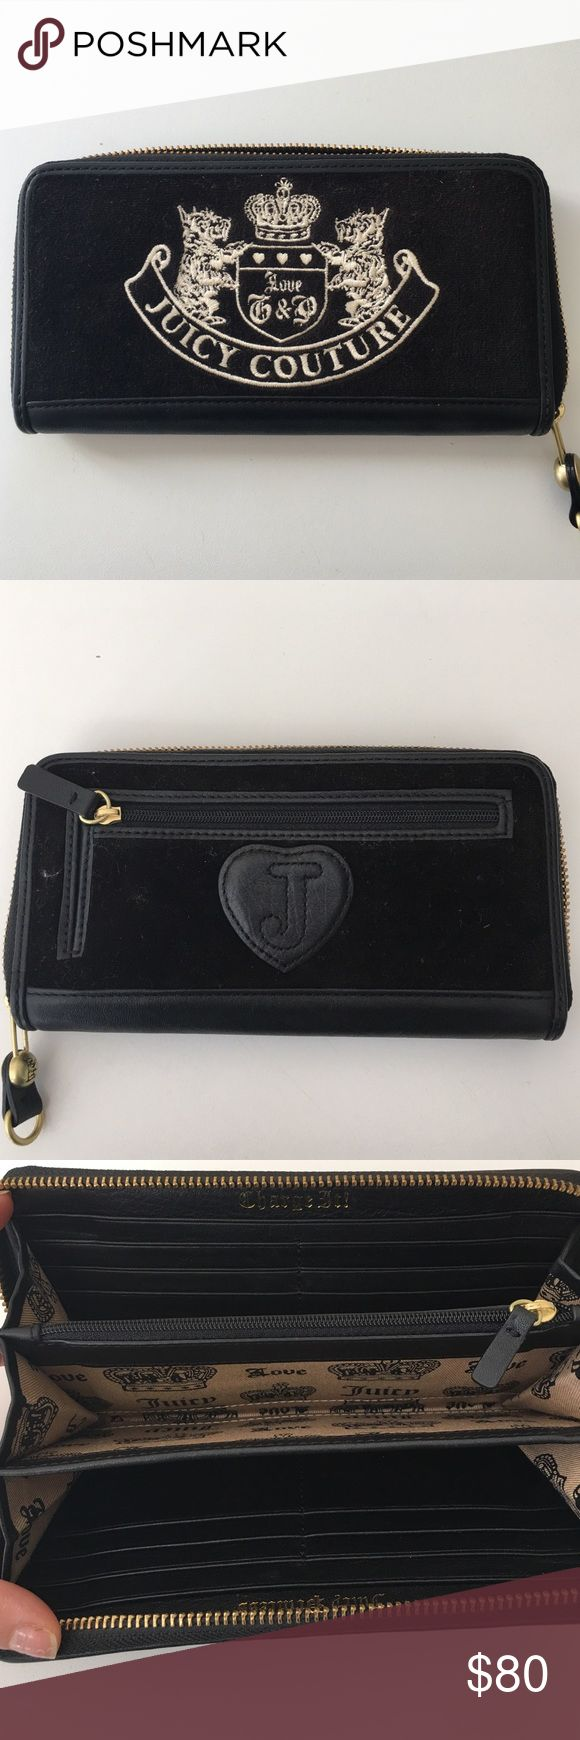 Juicy couture wallet Like new. Only been used once. Black velvet with zipper. Juicy Couture Bags Wallets